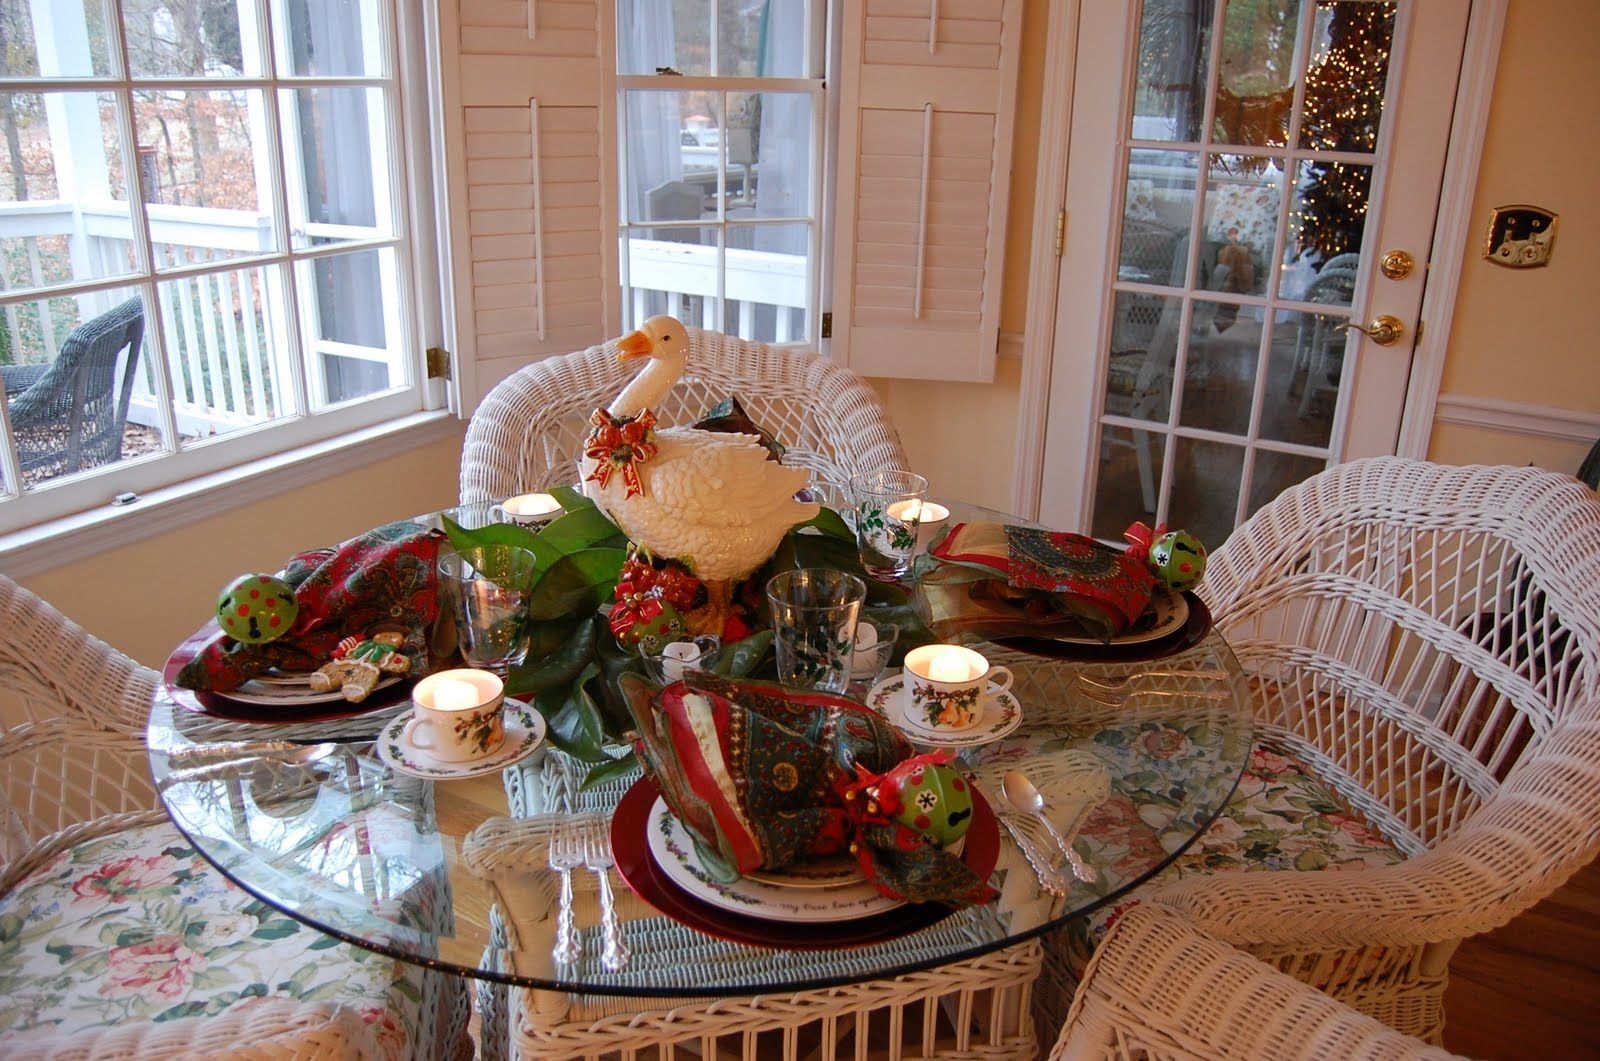 Twelve Days Of Christmas Table Setting Christmas Tablescapes Christmas Table Decorations Christmas Table Settings